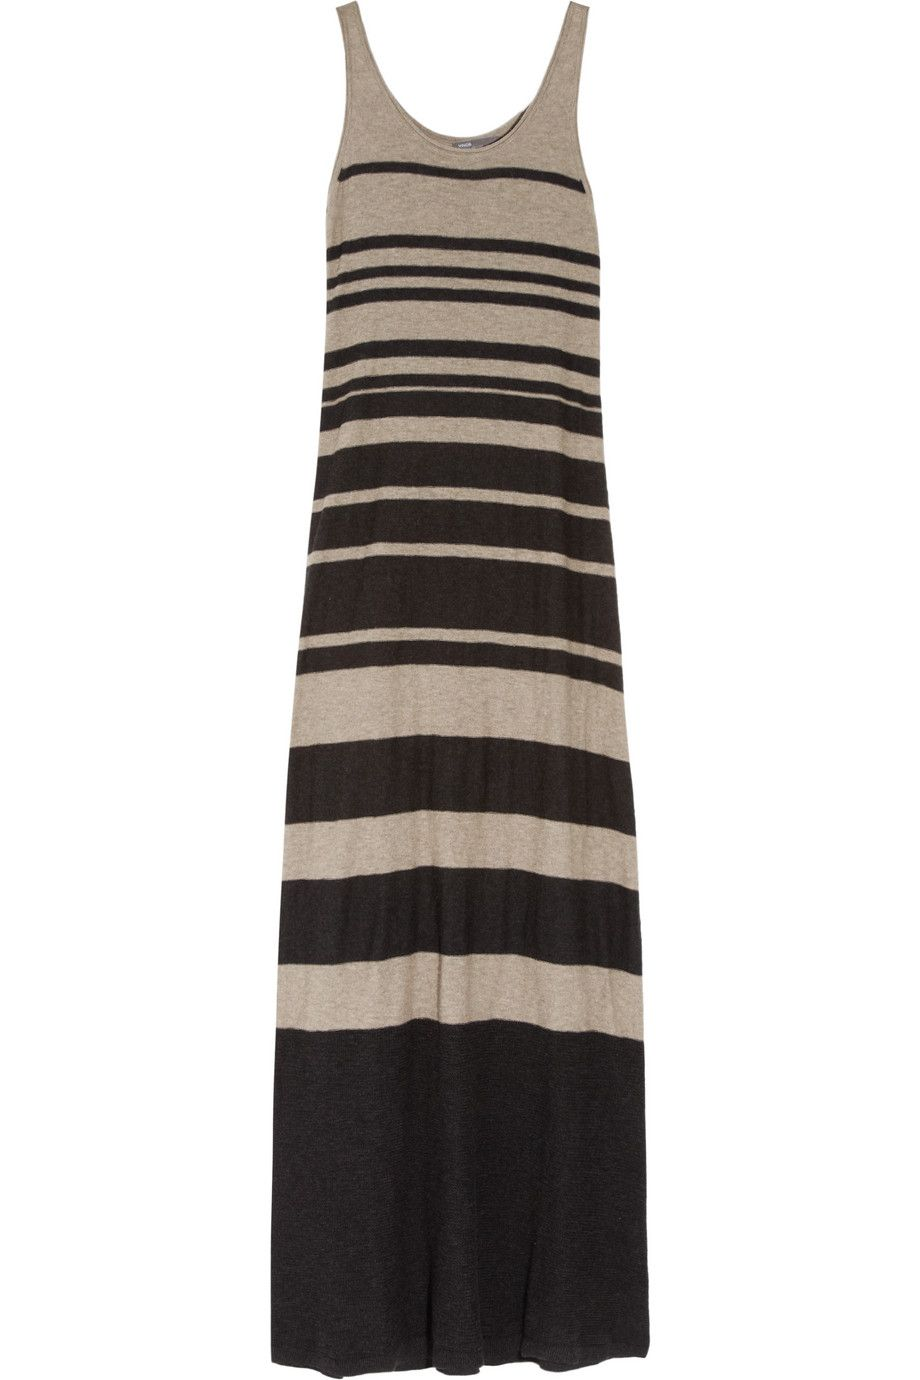 Vince striped knitted cotton maxi dress h o t pinterest cotton